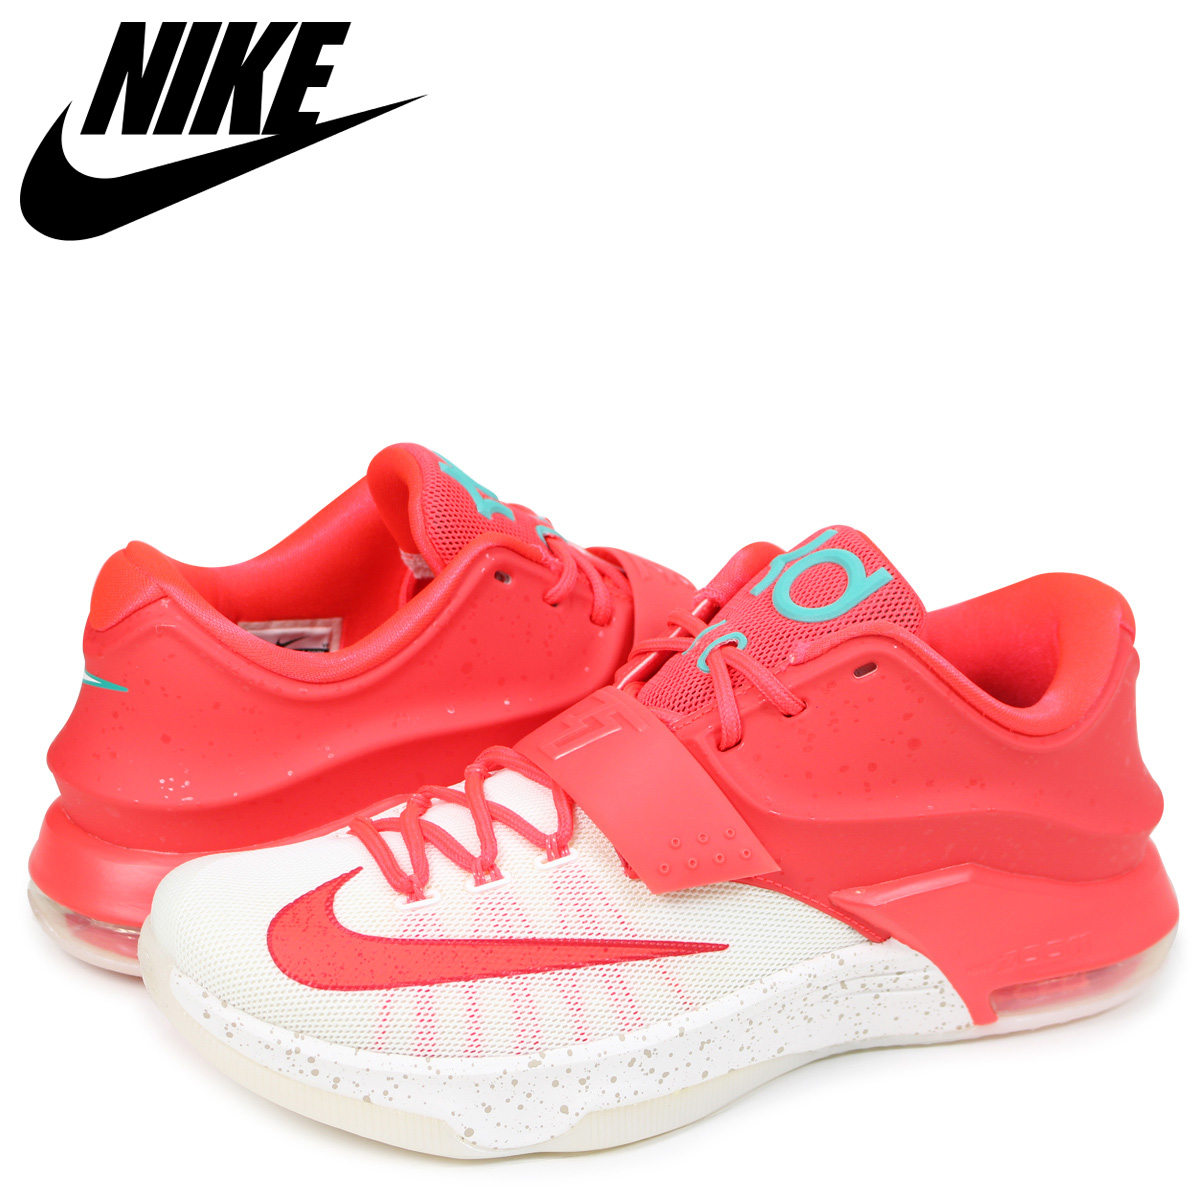 brand new 5b836 fcd92 NIKE Nike KD 7 Kevin Durant sneakers men XMAS red 707,560-613